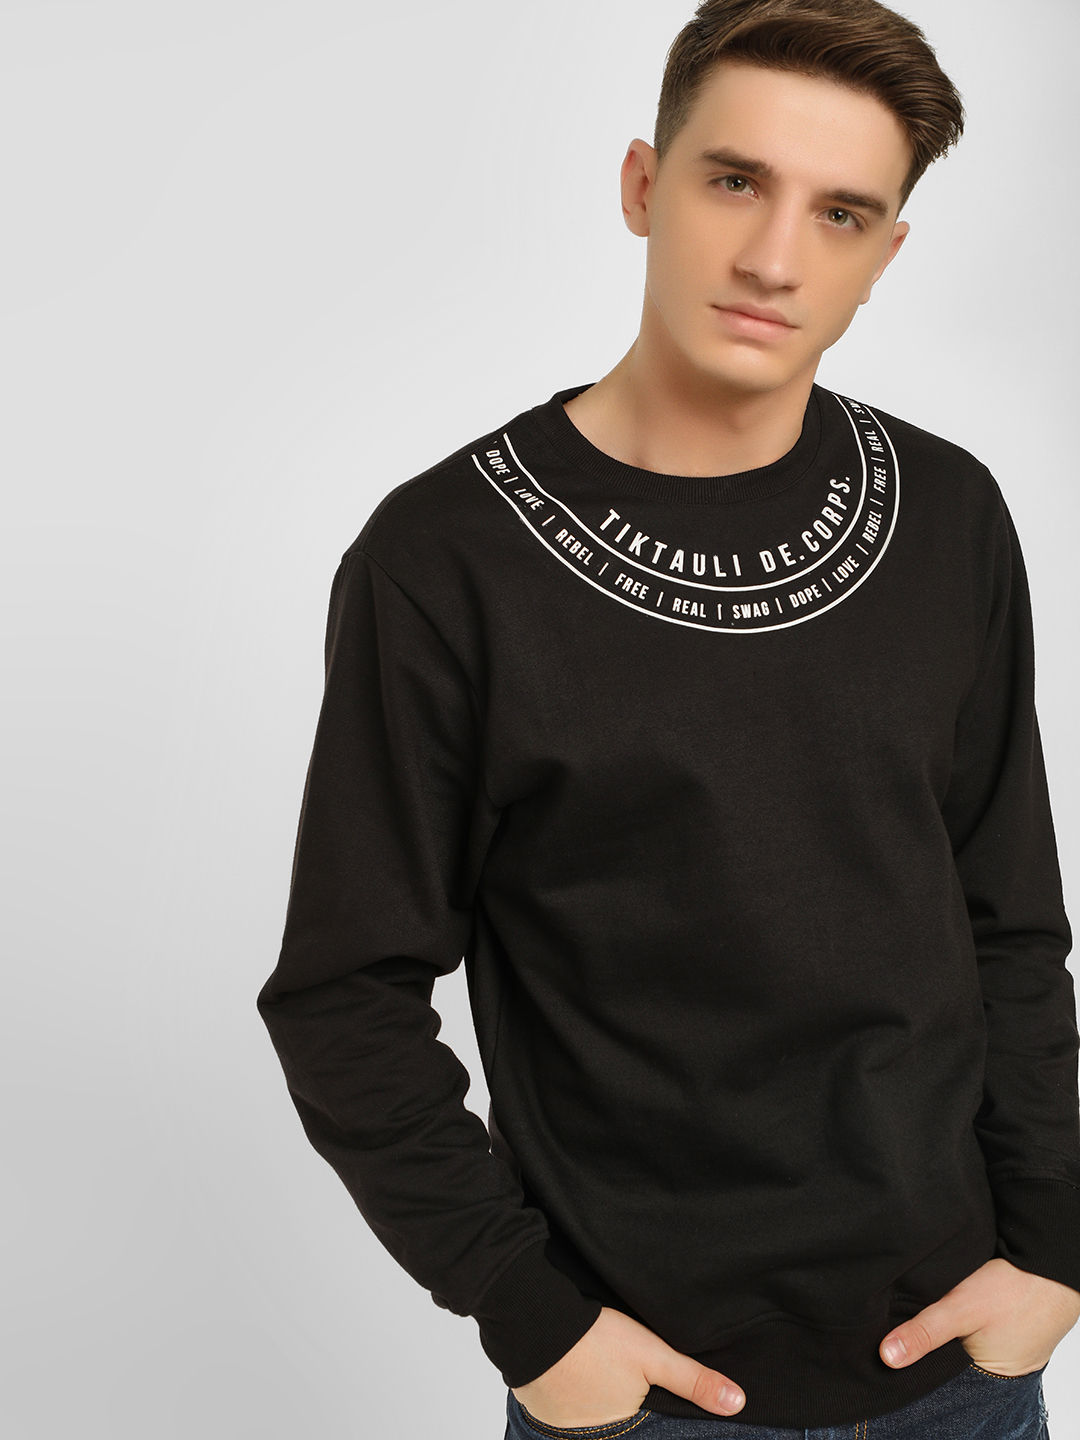 Tiktauli Black Placement Print Sweatshirt 1